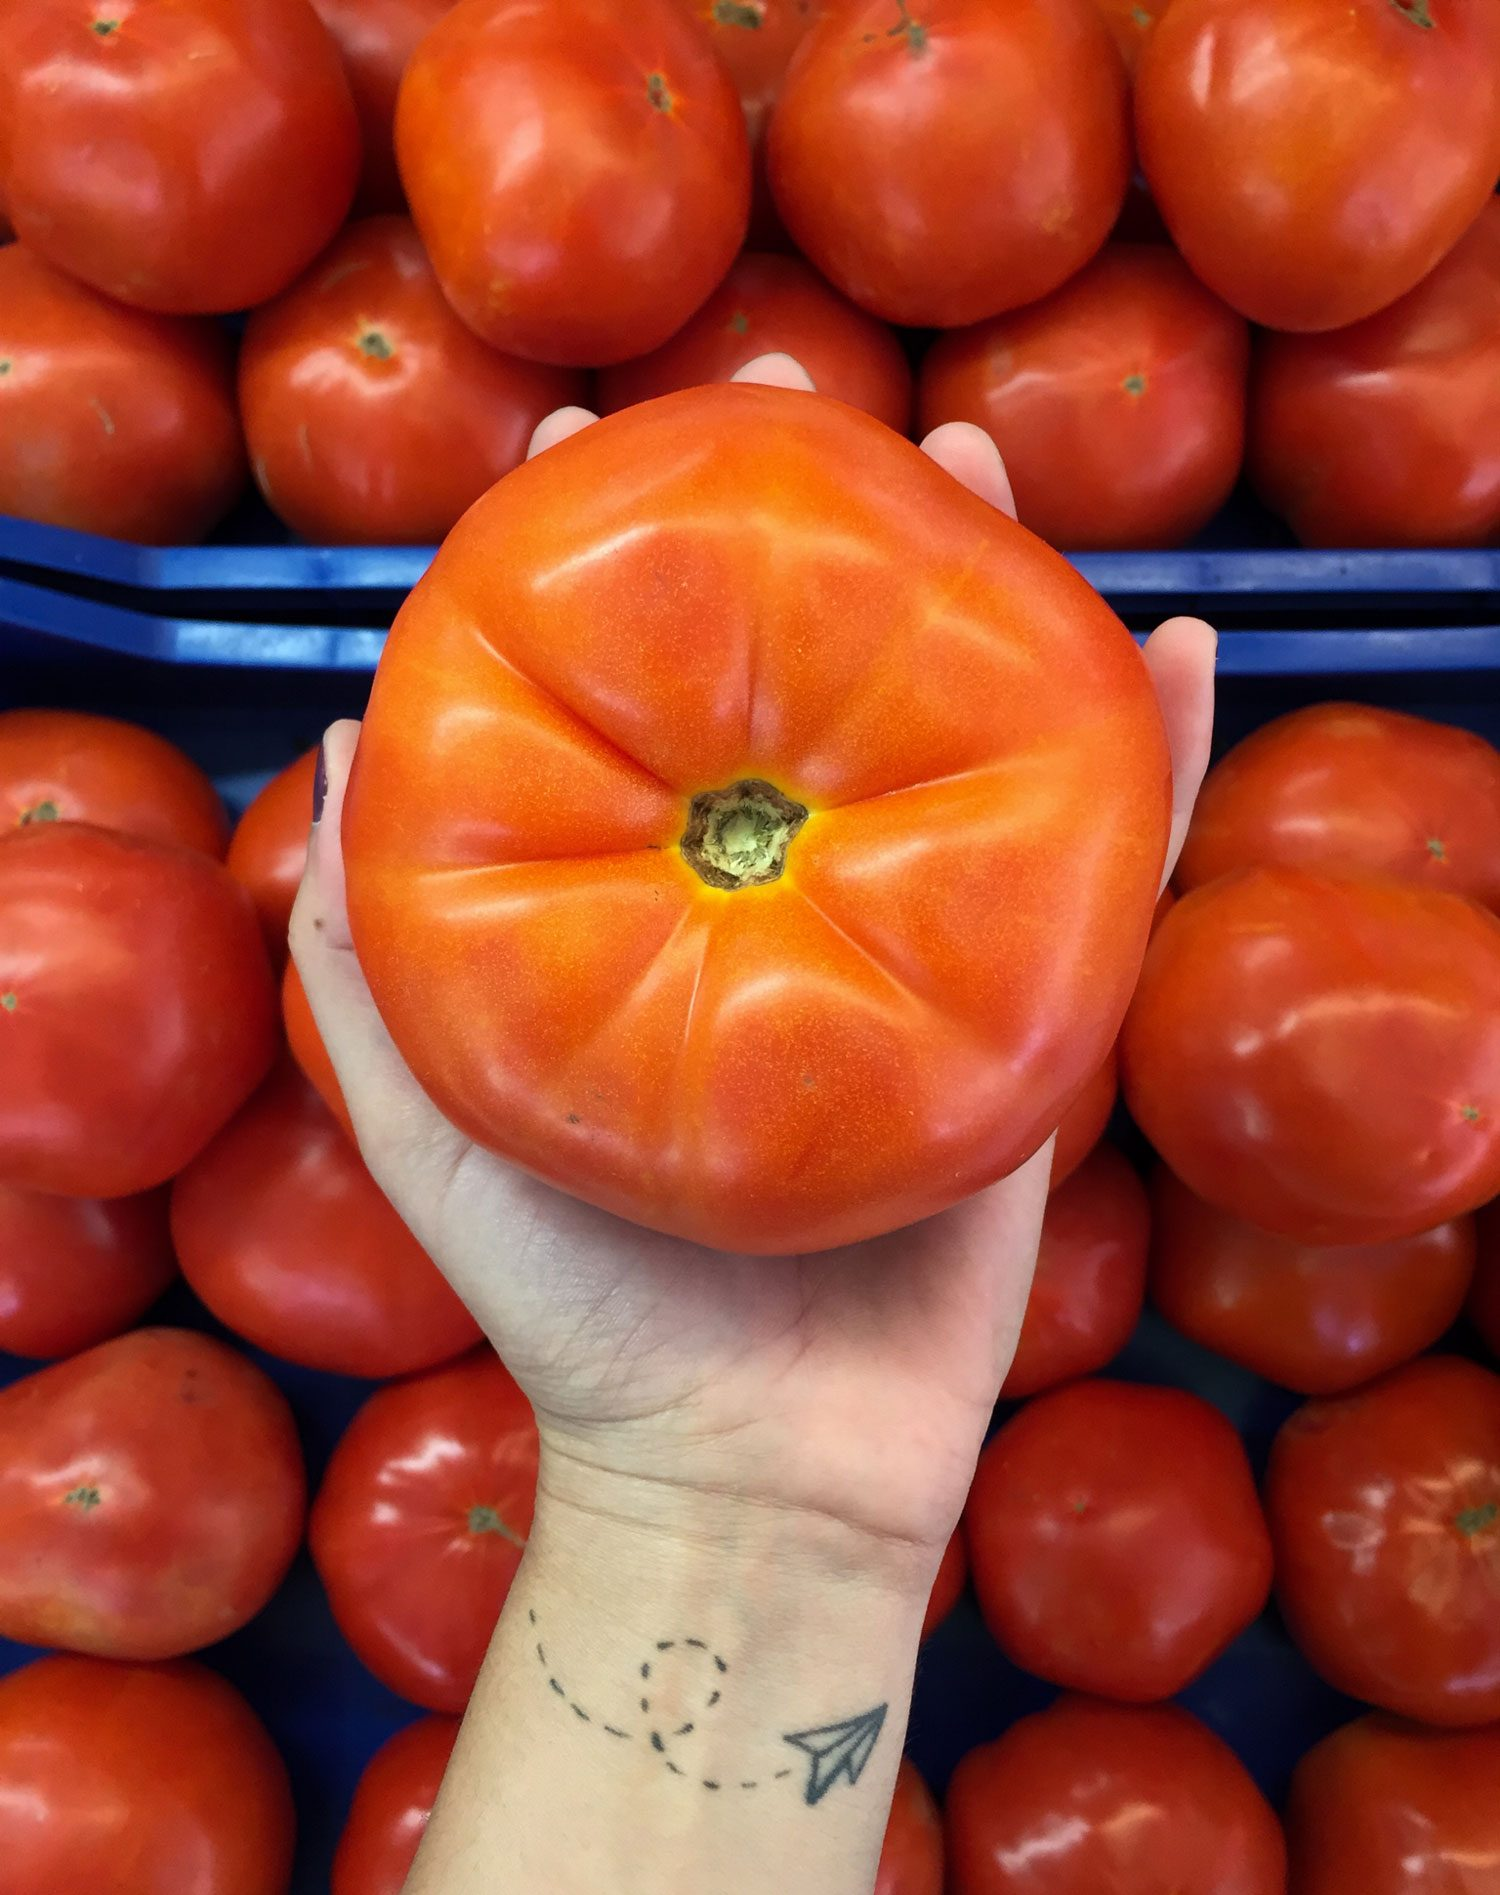 A person grasping a large, red tomato.